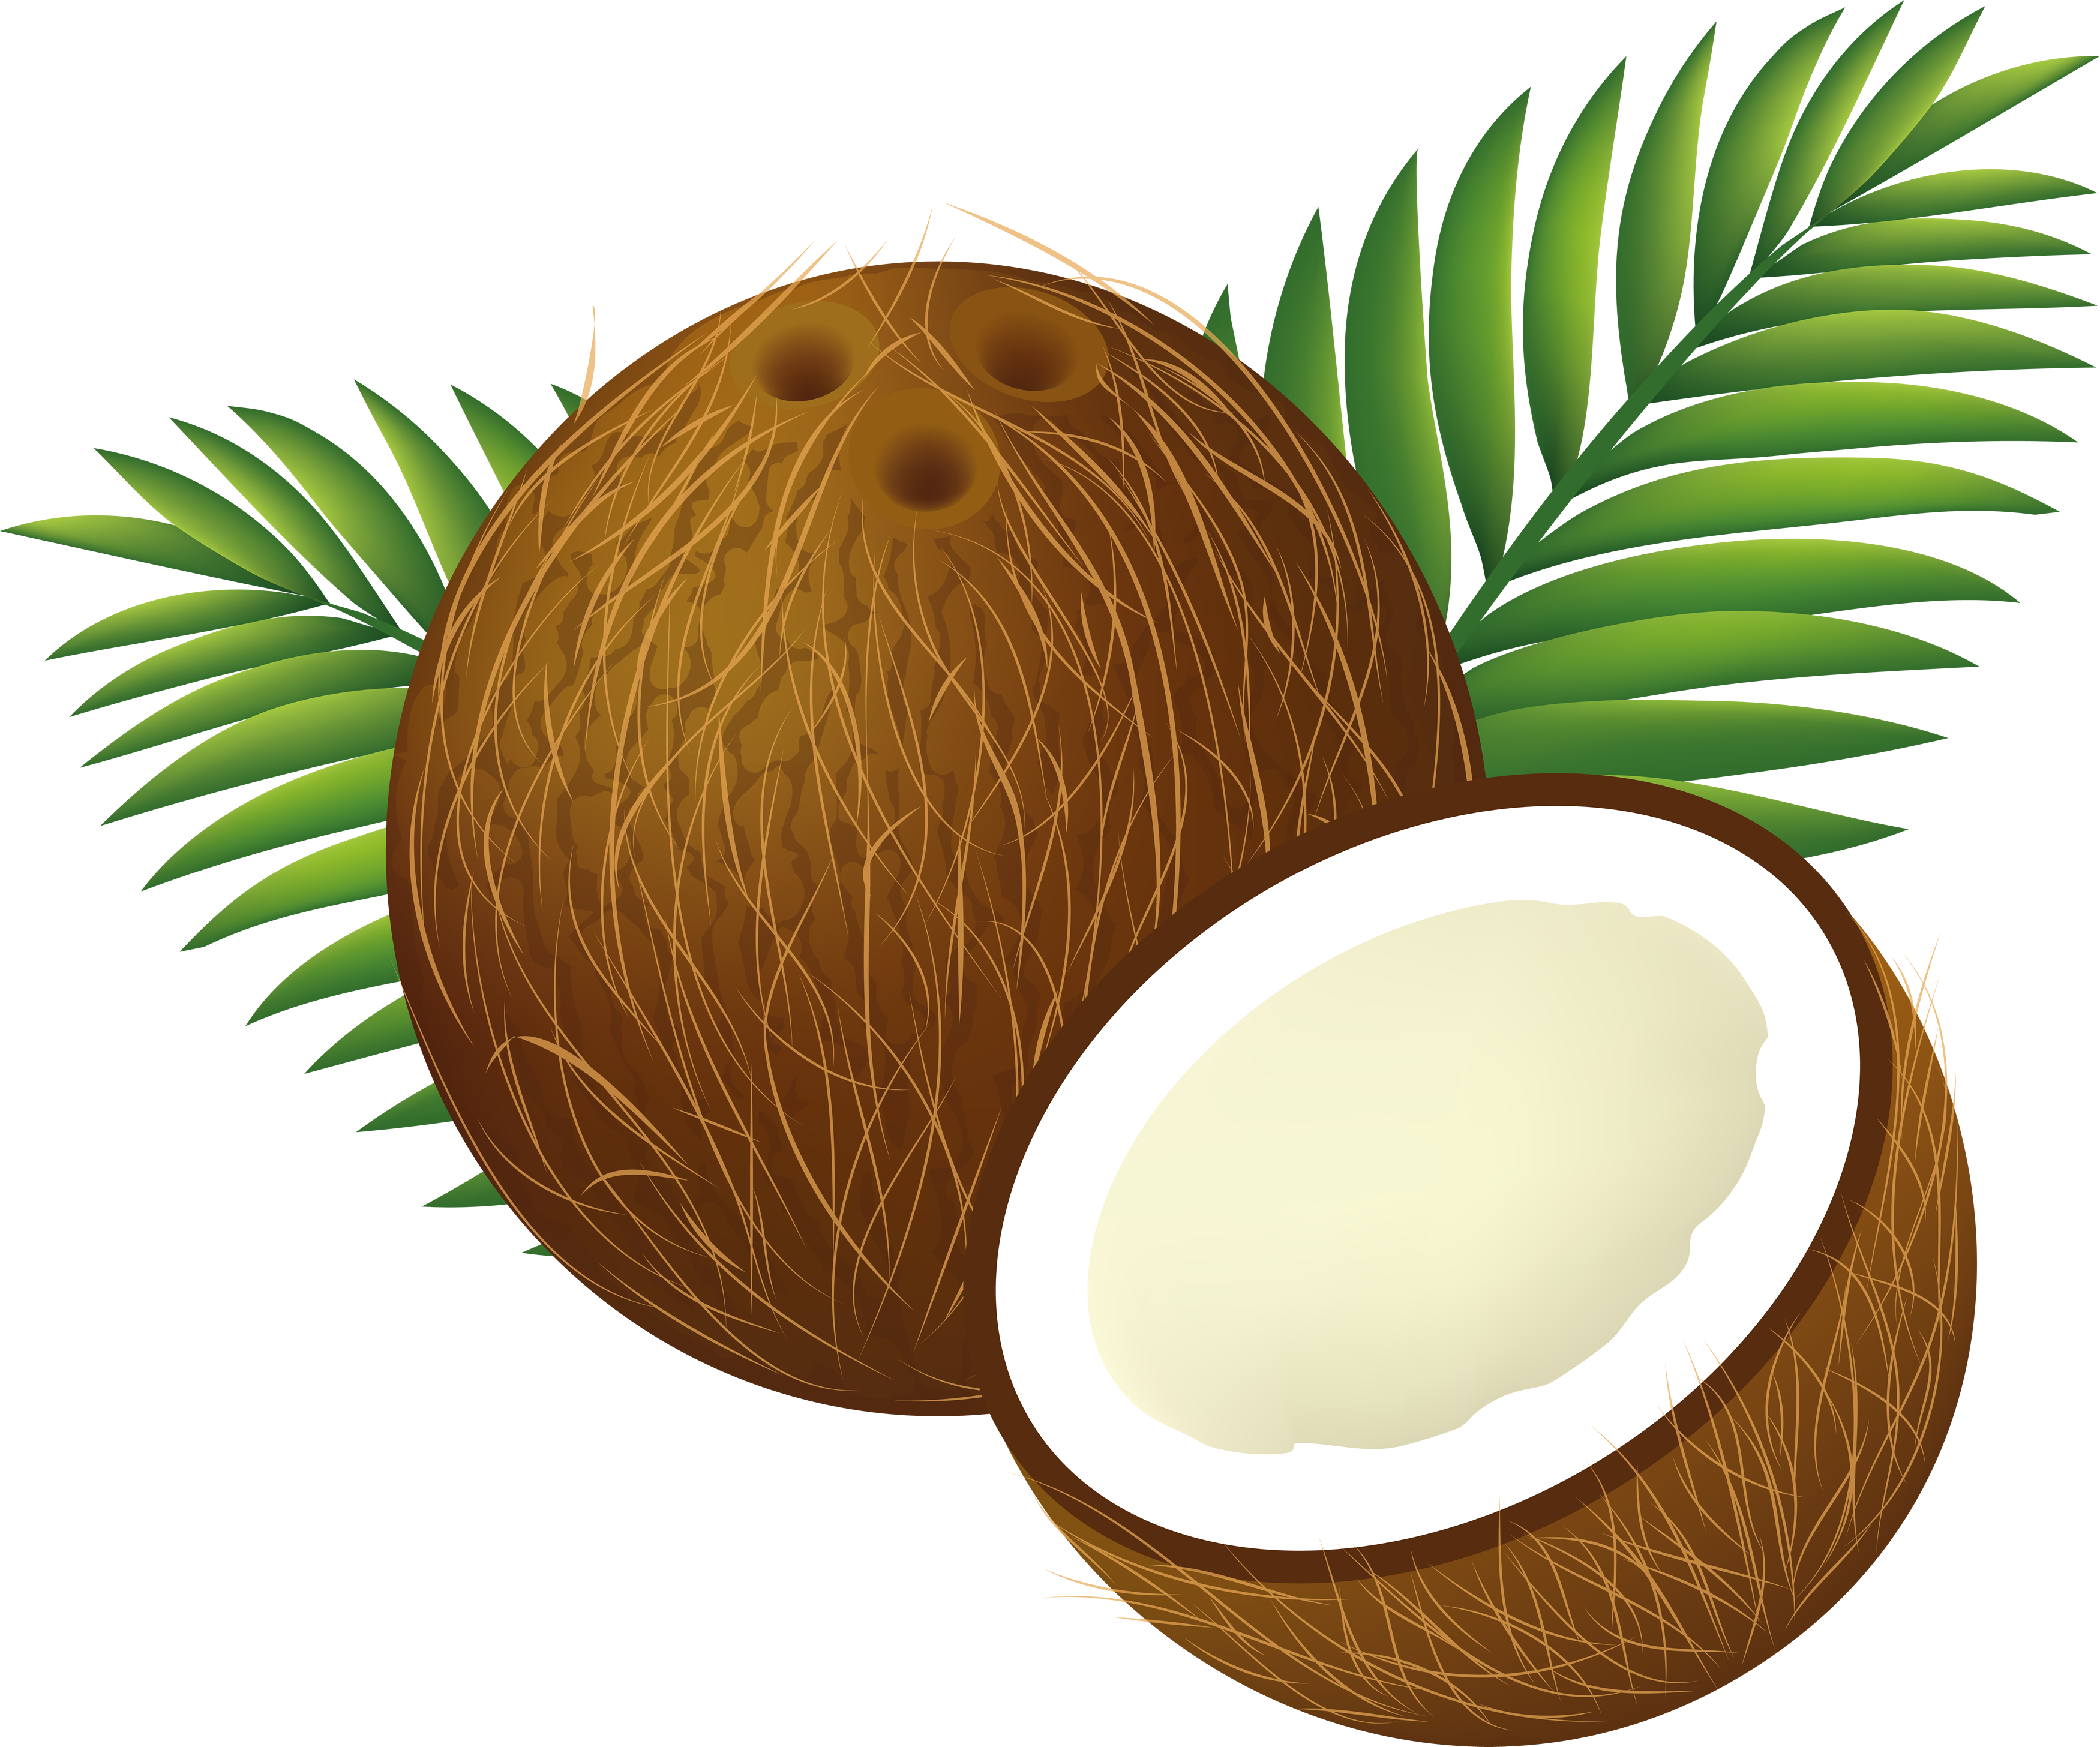 coconut png image purepng free transparent cc0 png image library